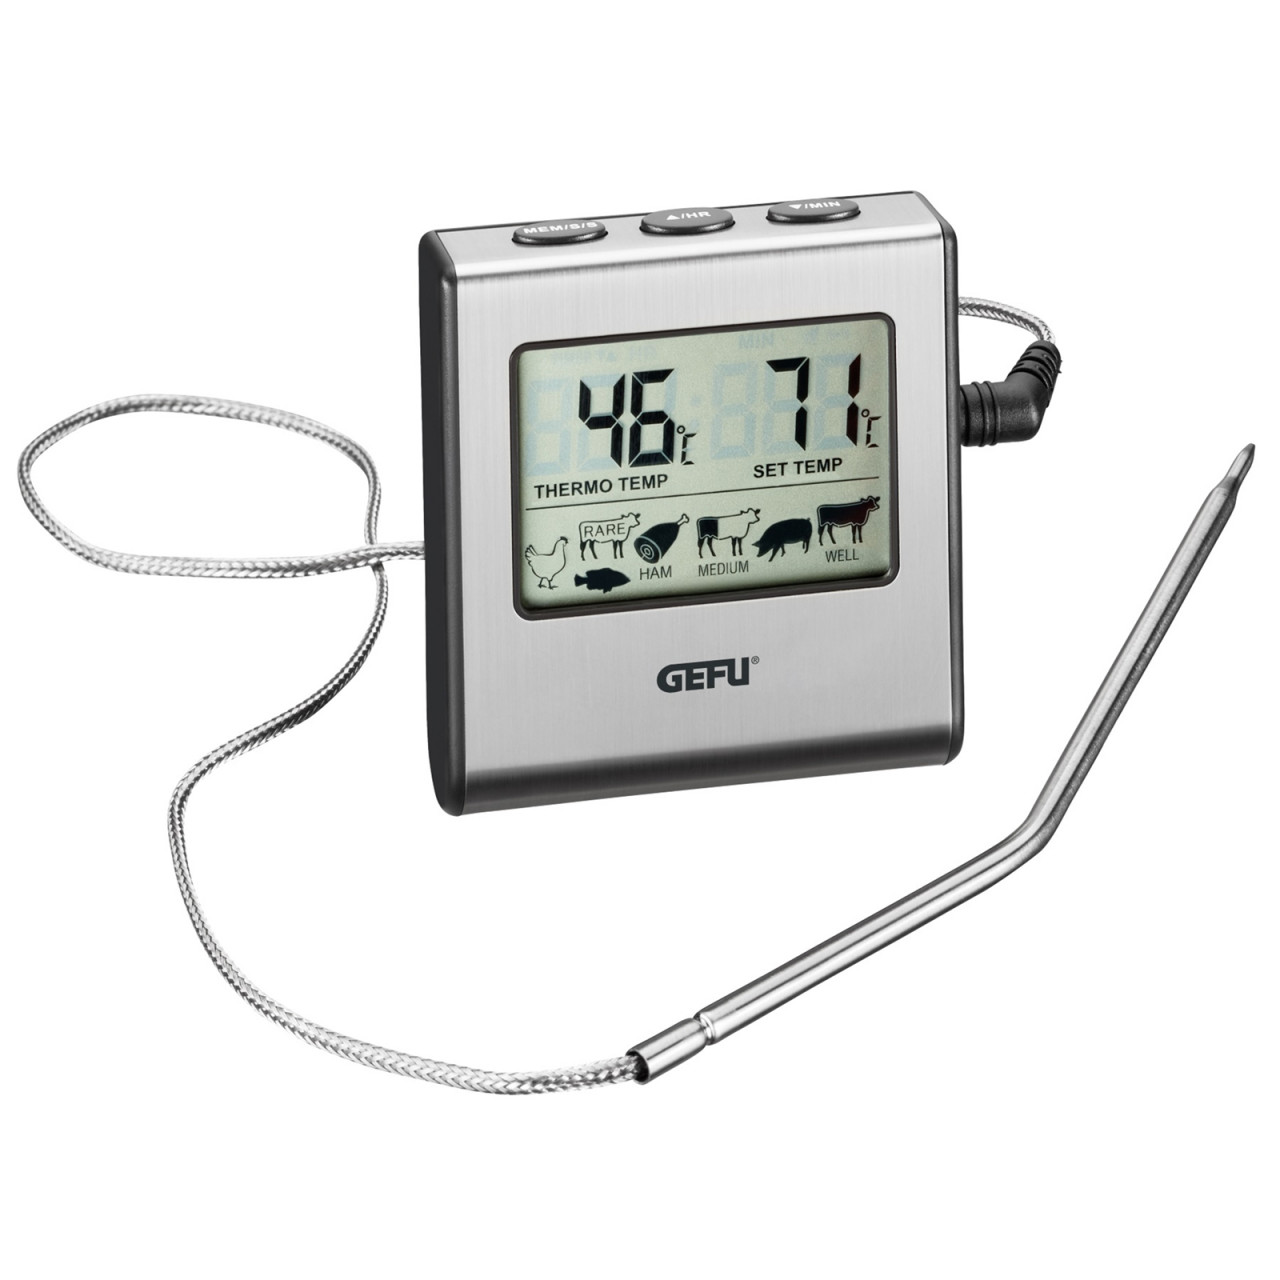 GEFU Digitales Backofenthermometer Tempere